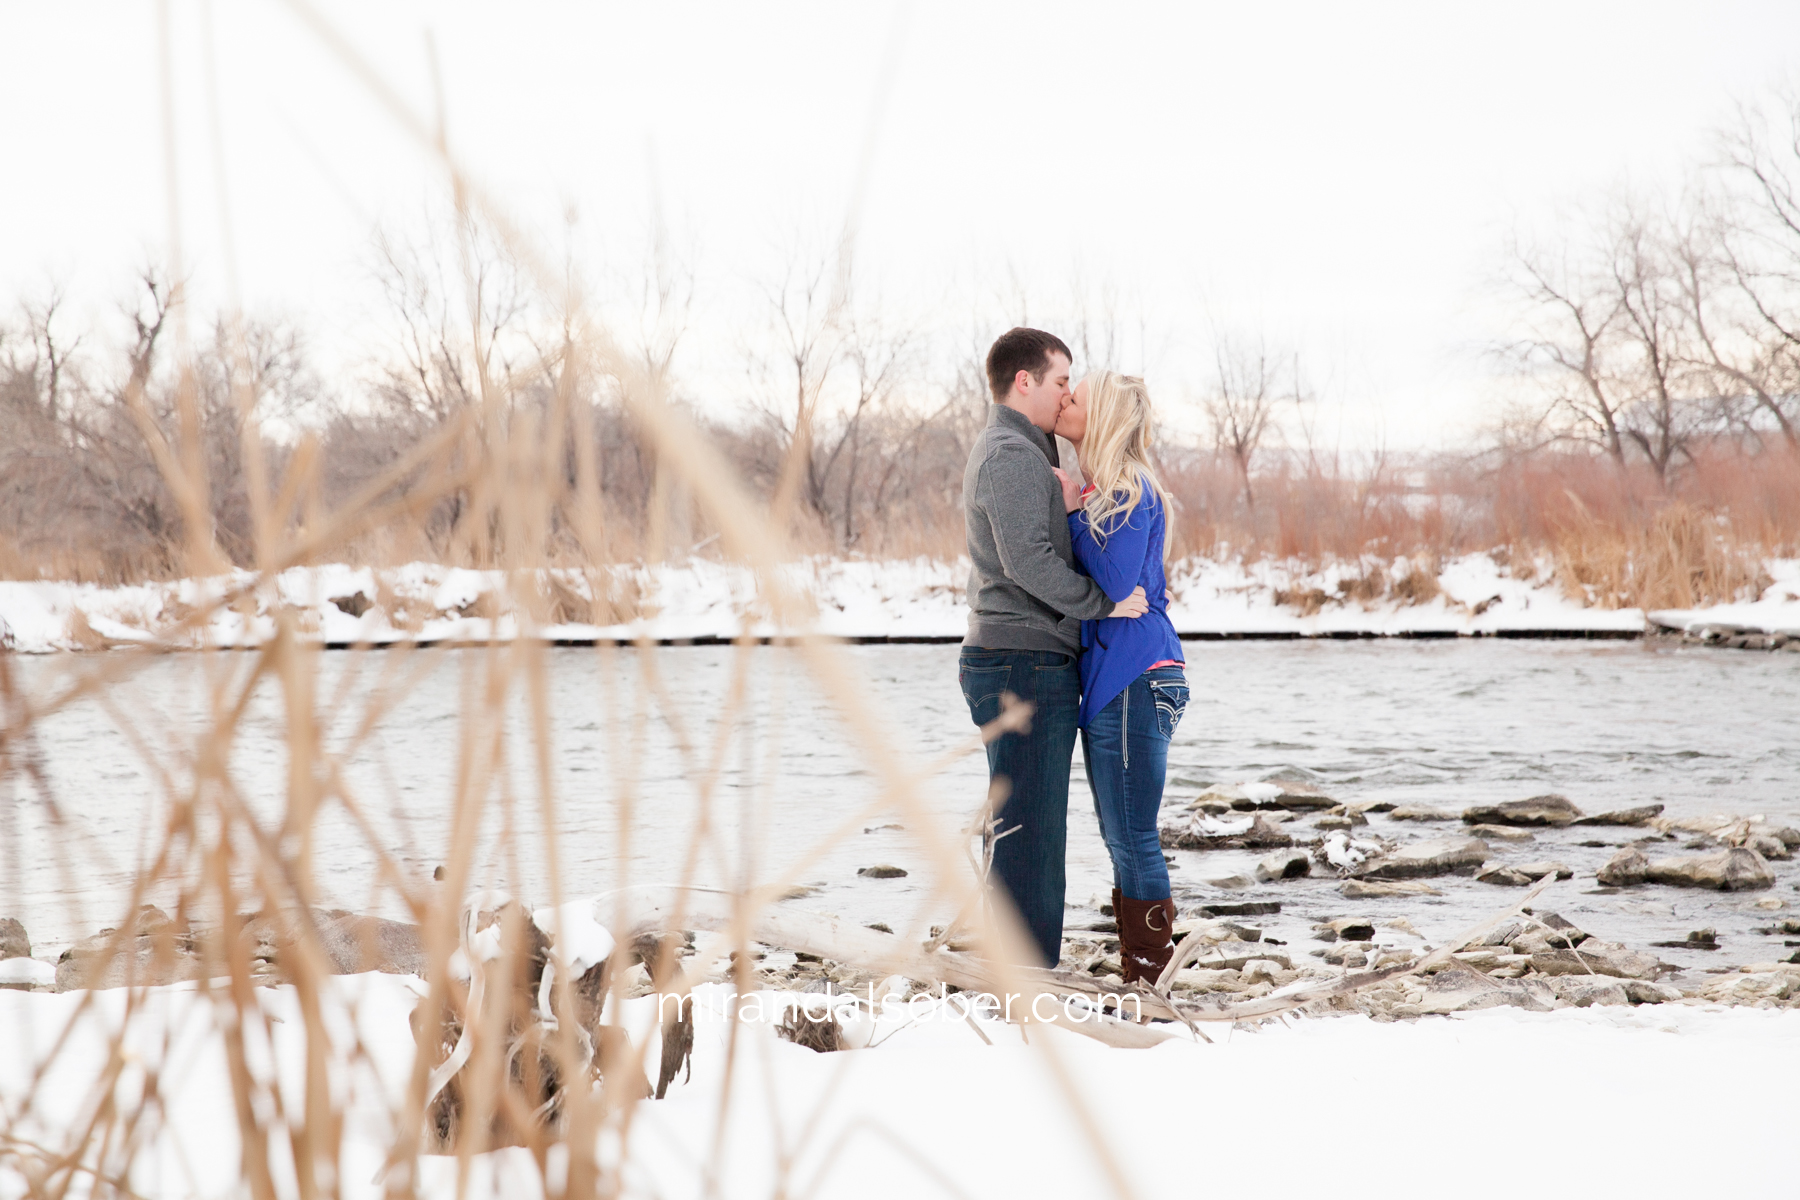 Fort Collins engagement photographer, Miranda L. Sober Photography